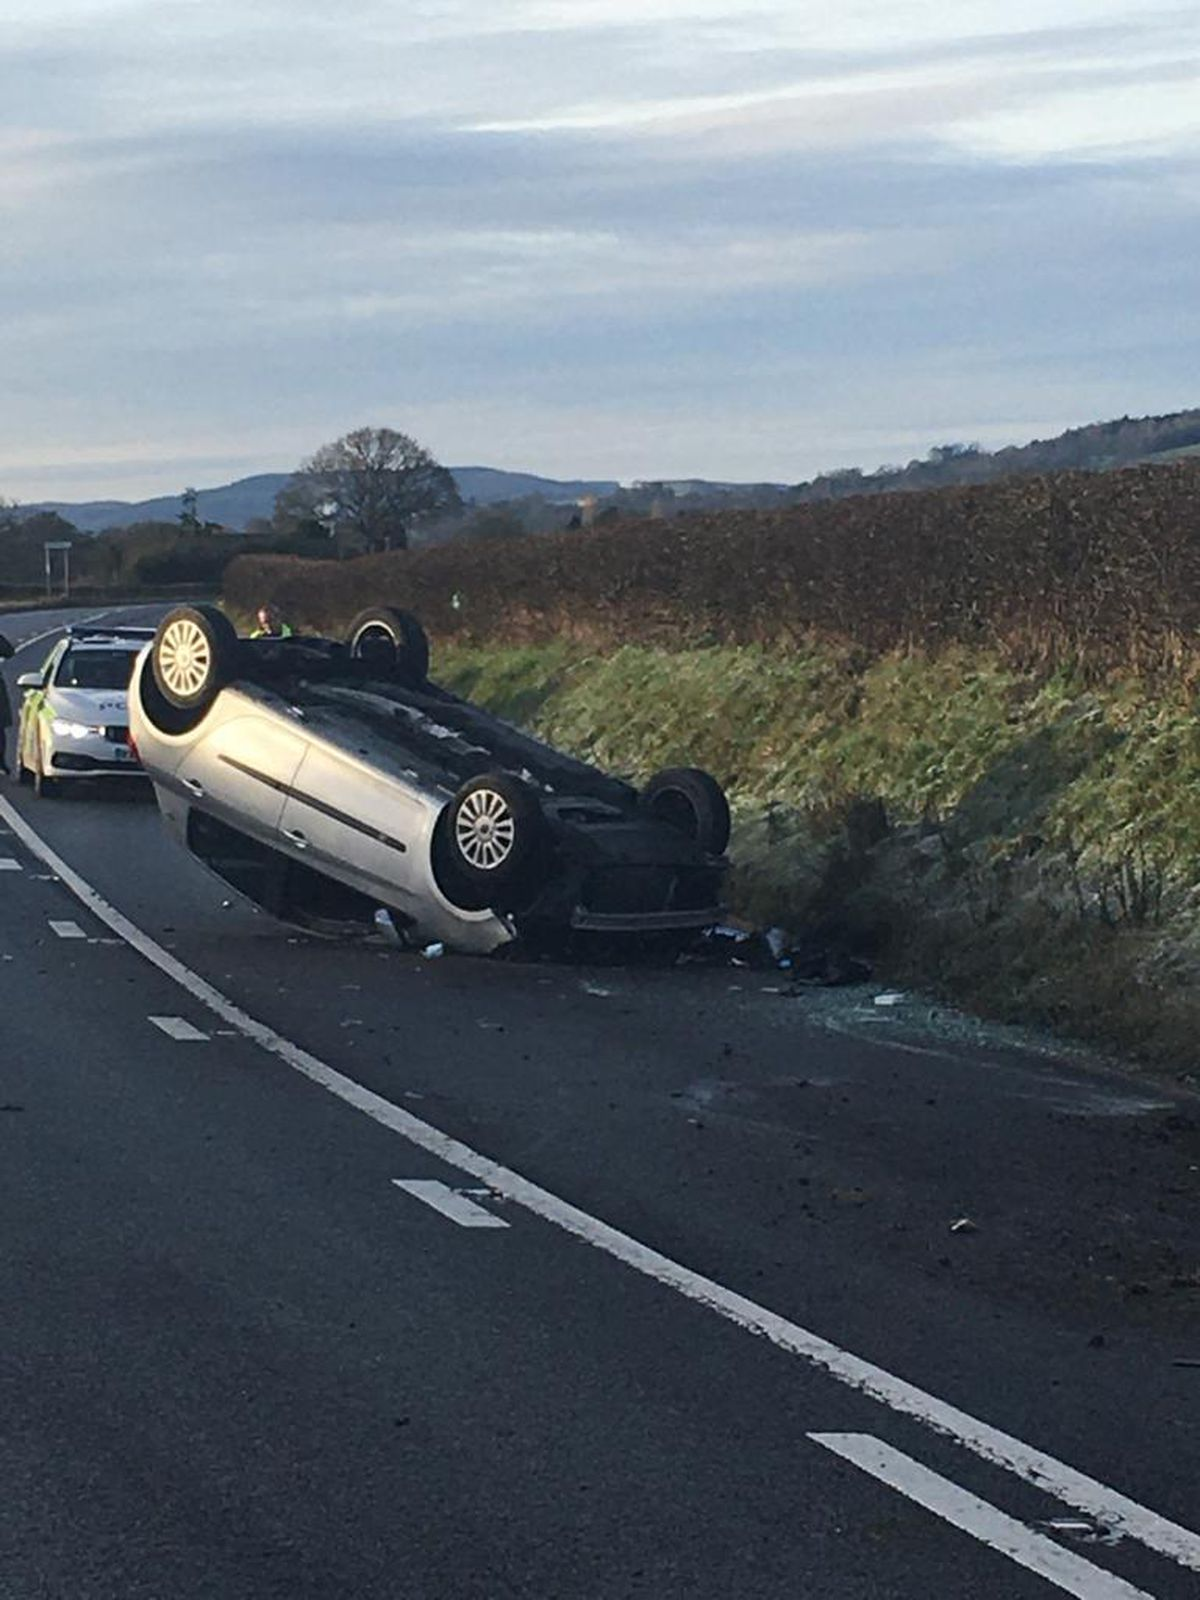 An image posted by police of the overturned car. Picture: OPU Shropshire